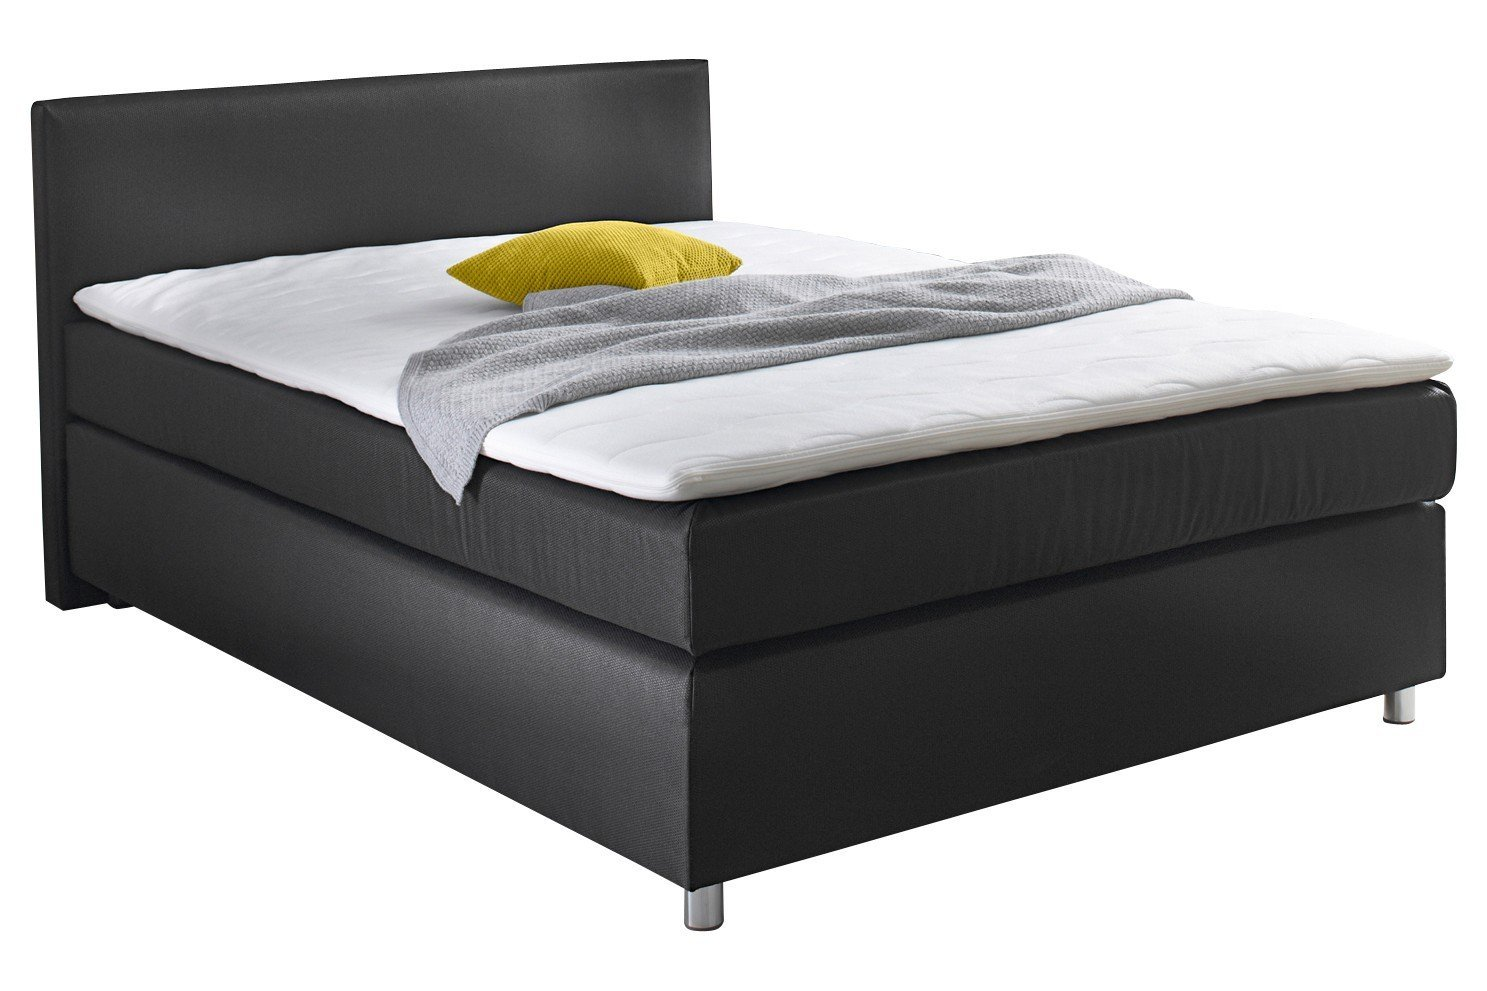 boxspring einzelbett test vergleich top 10 im september 2018. Black Bedroom Furniture Sets. Home Design Ideas